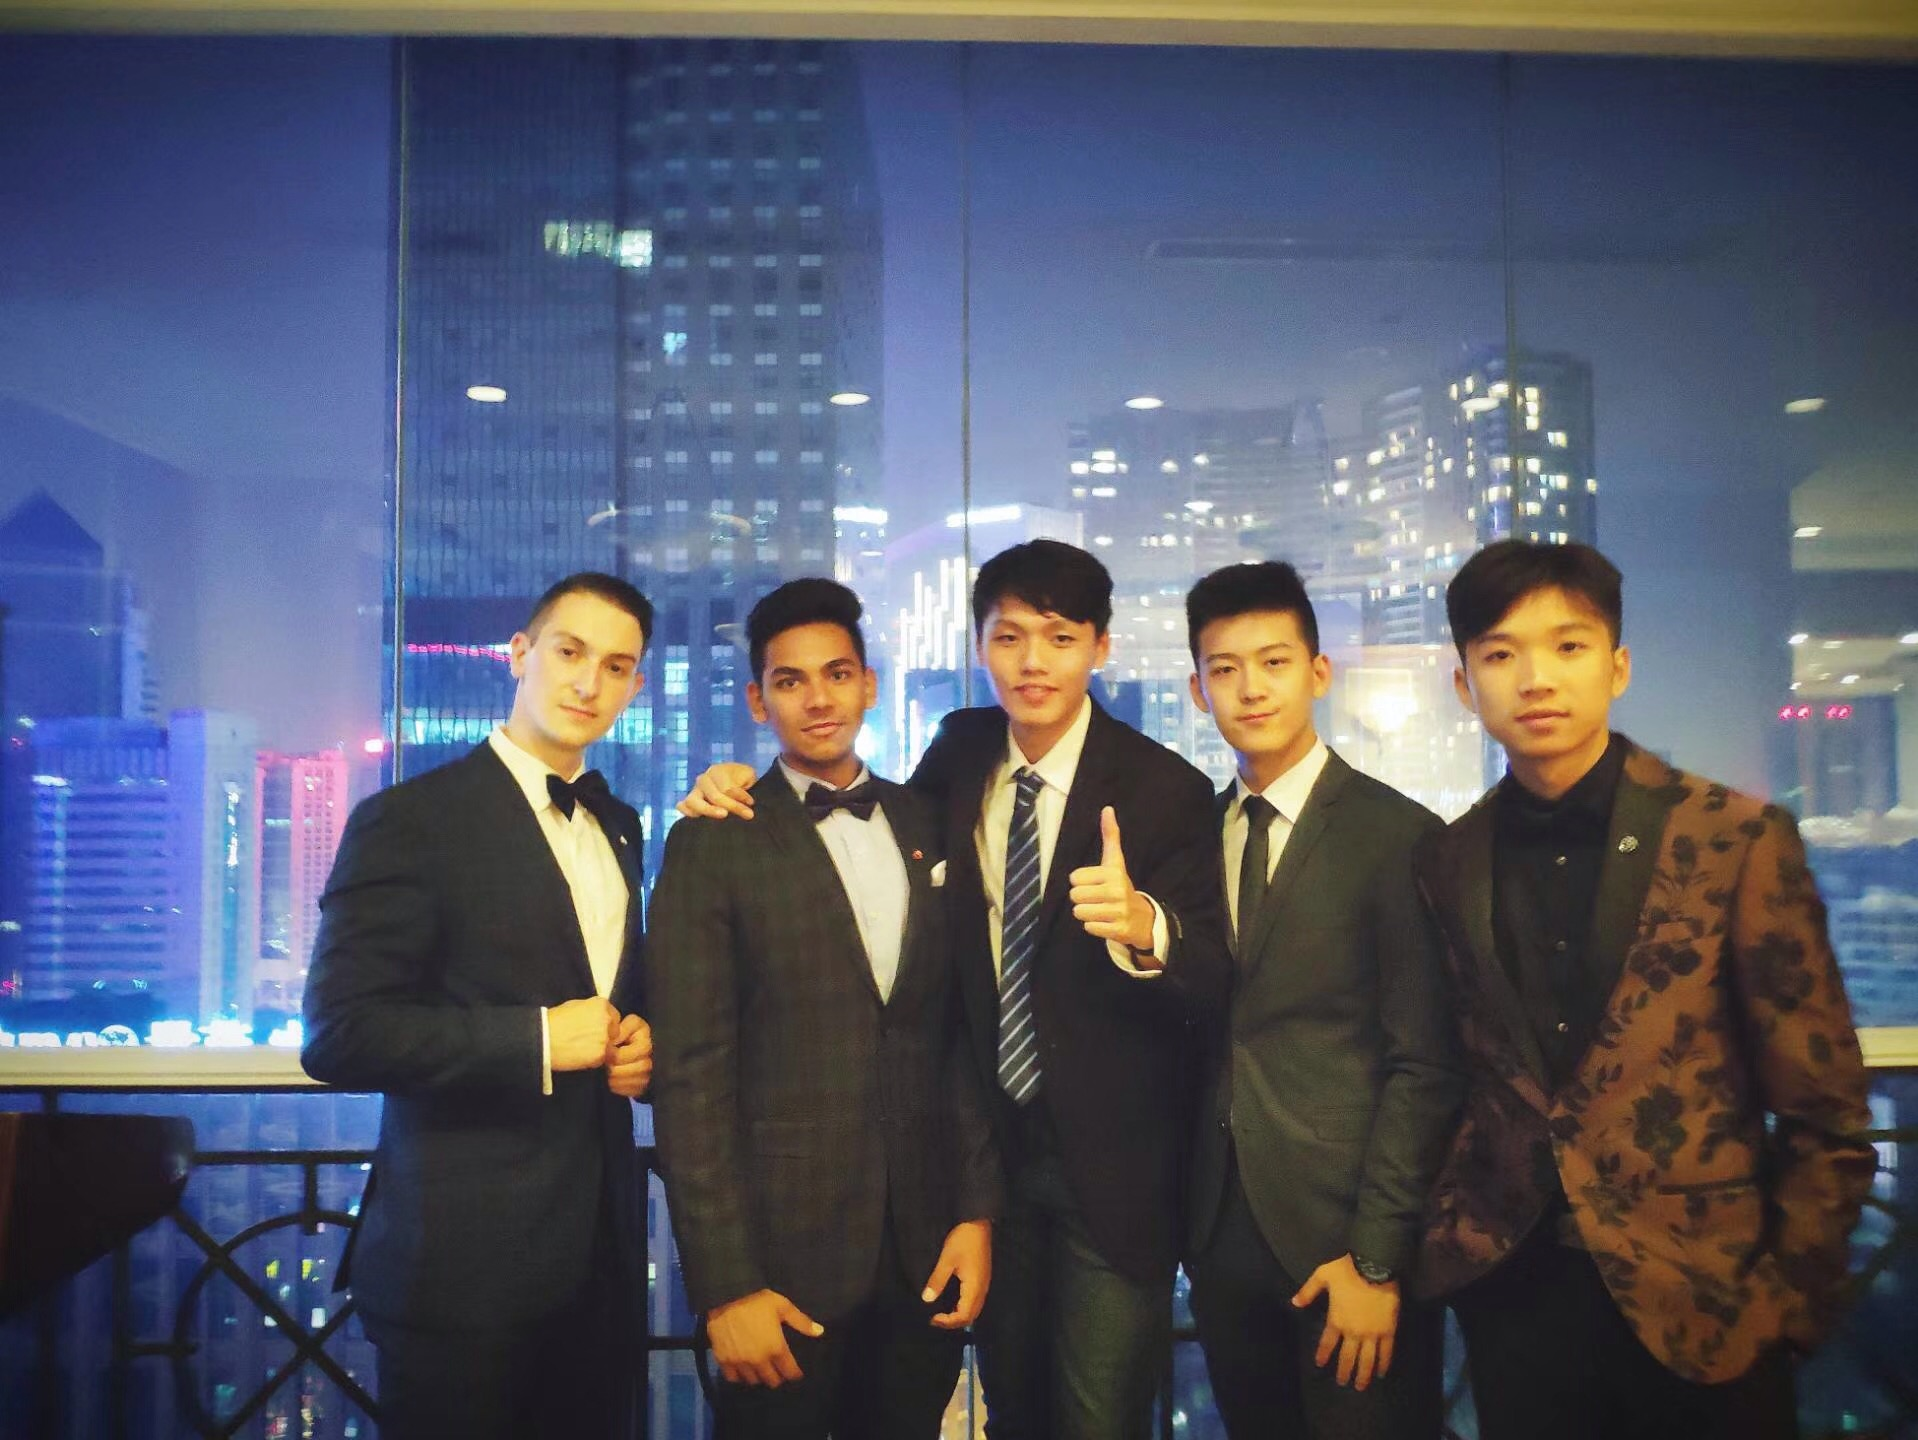 Select JTC Ambassadors gathered for a photo during their time in Hong Kong.